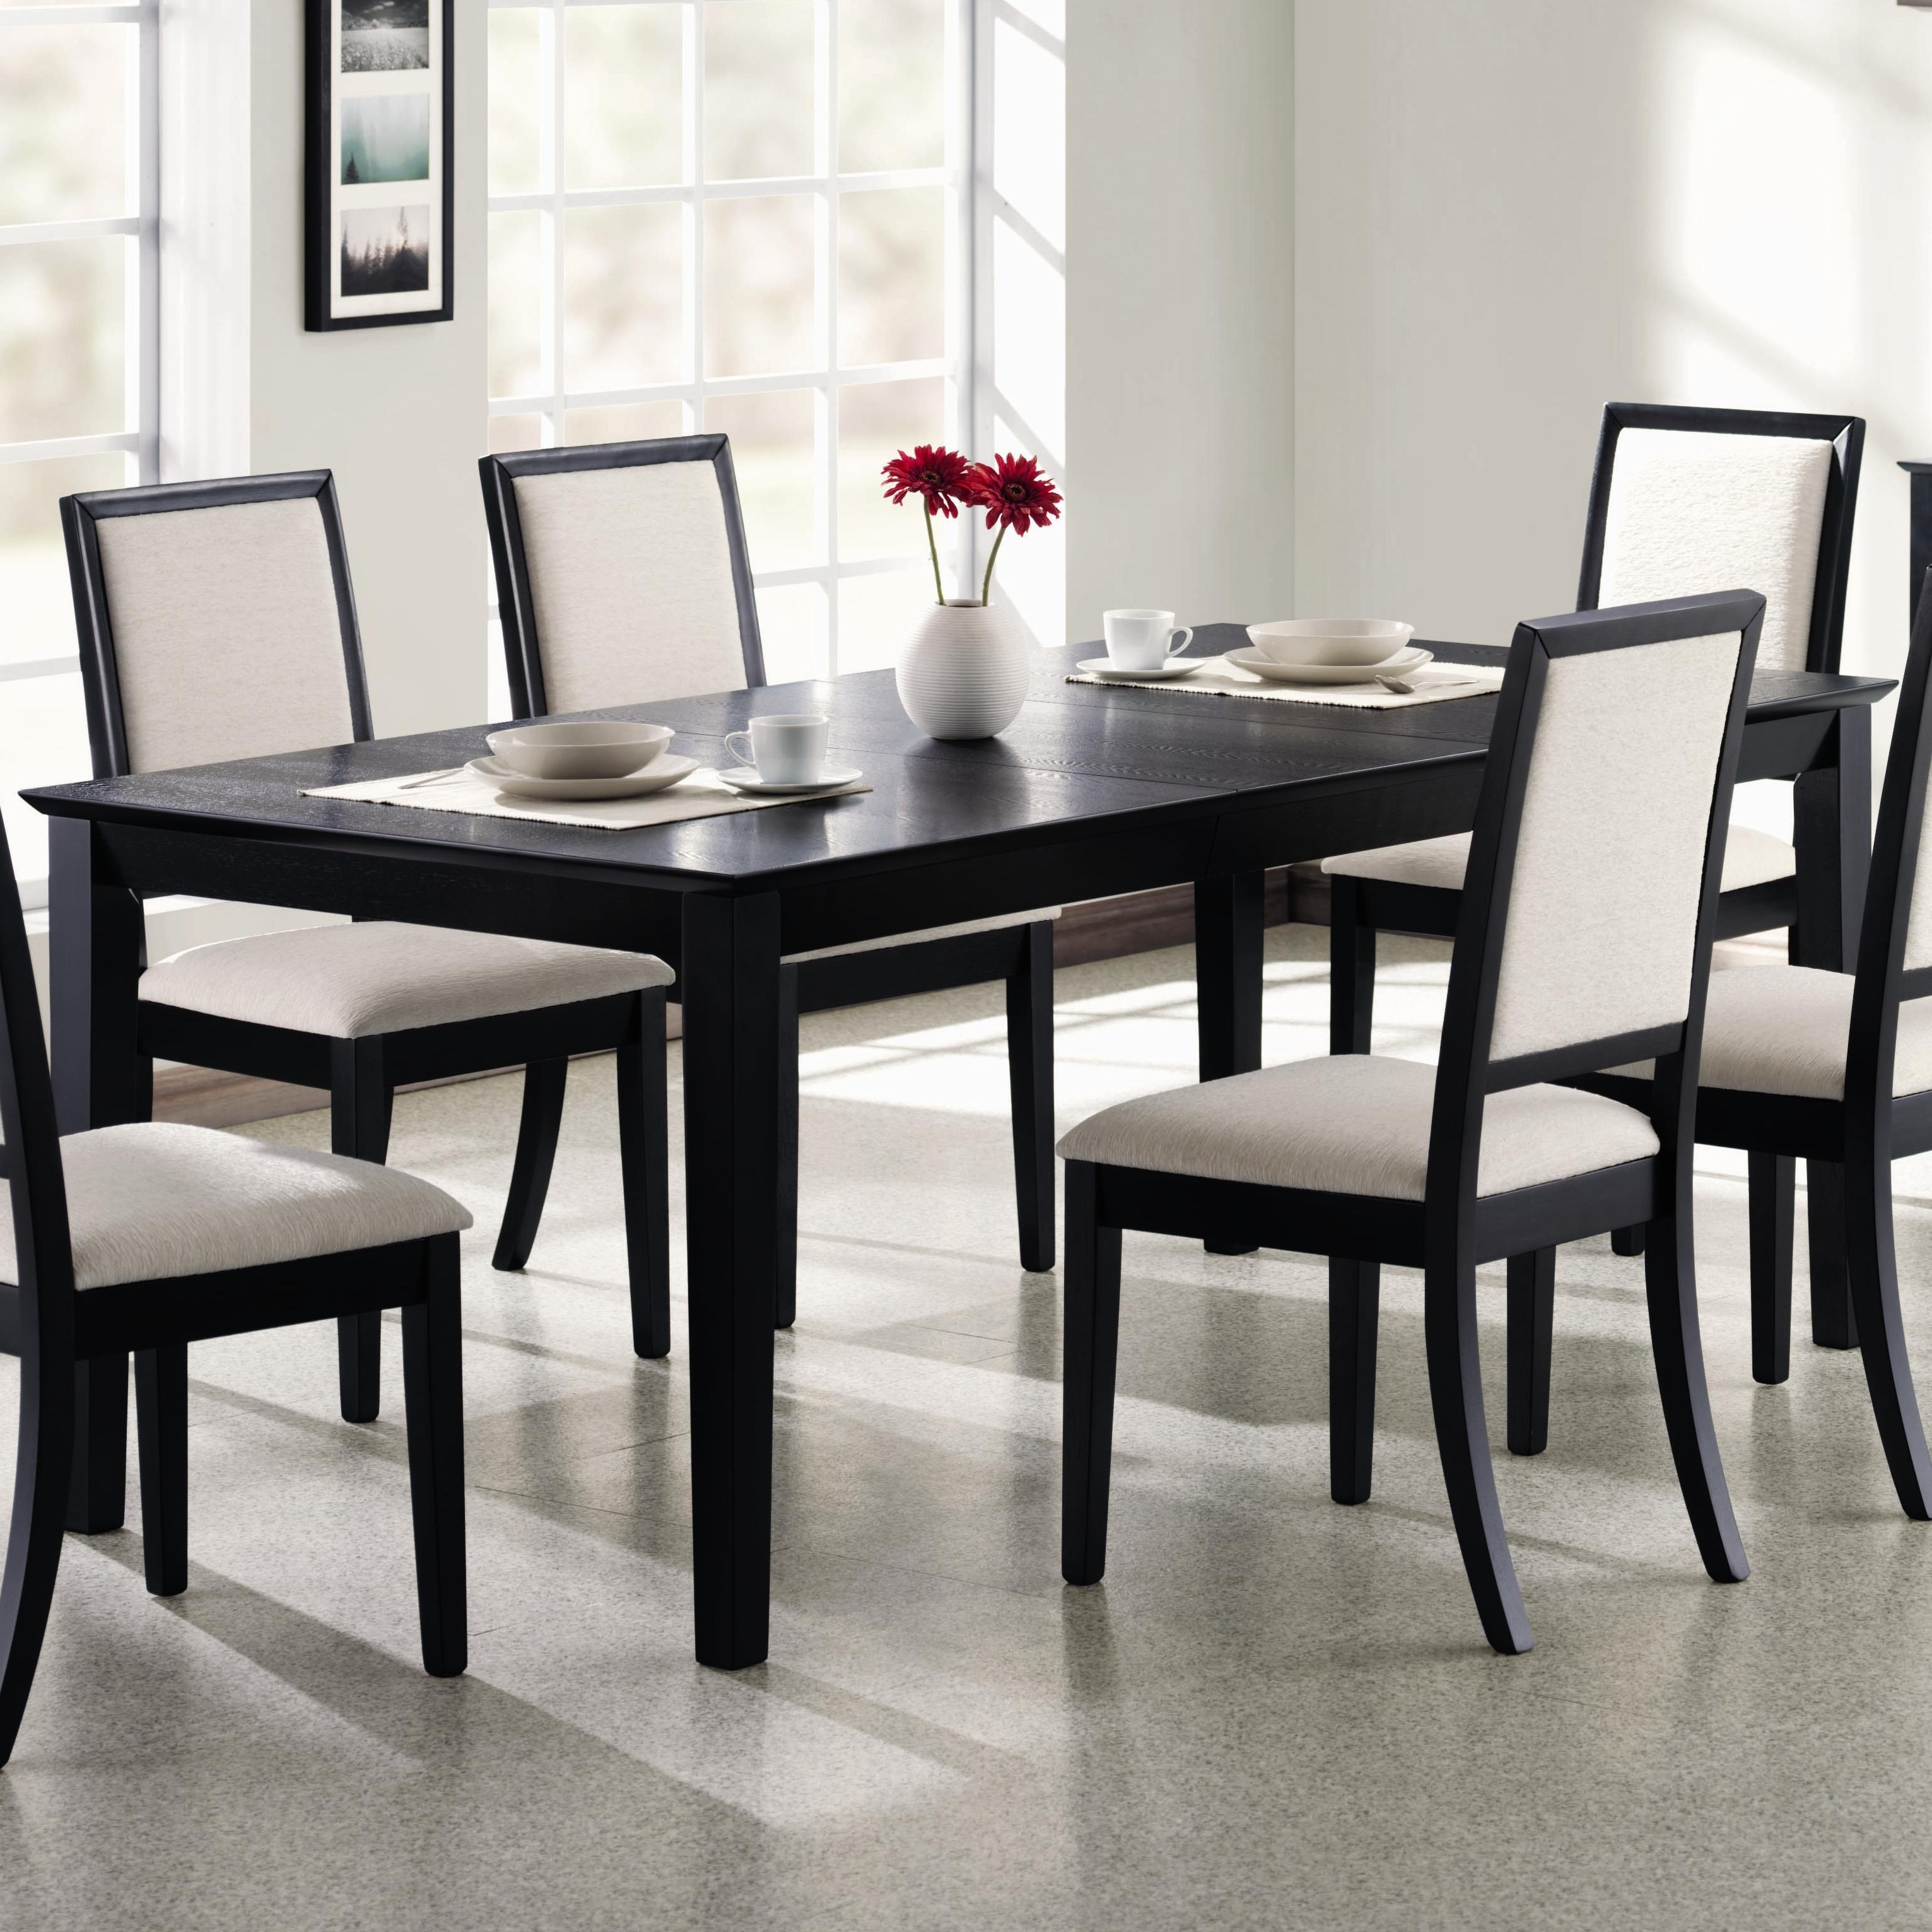 "Dining Tables In Well Known Coaster Lexton 101561 Rectangular Dining Table With 18"" Leaf (Gallery 14 of 25)"